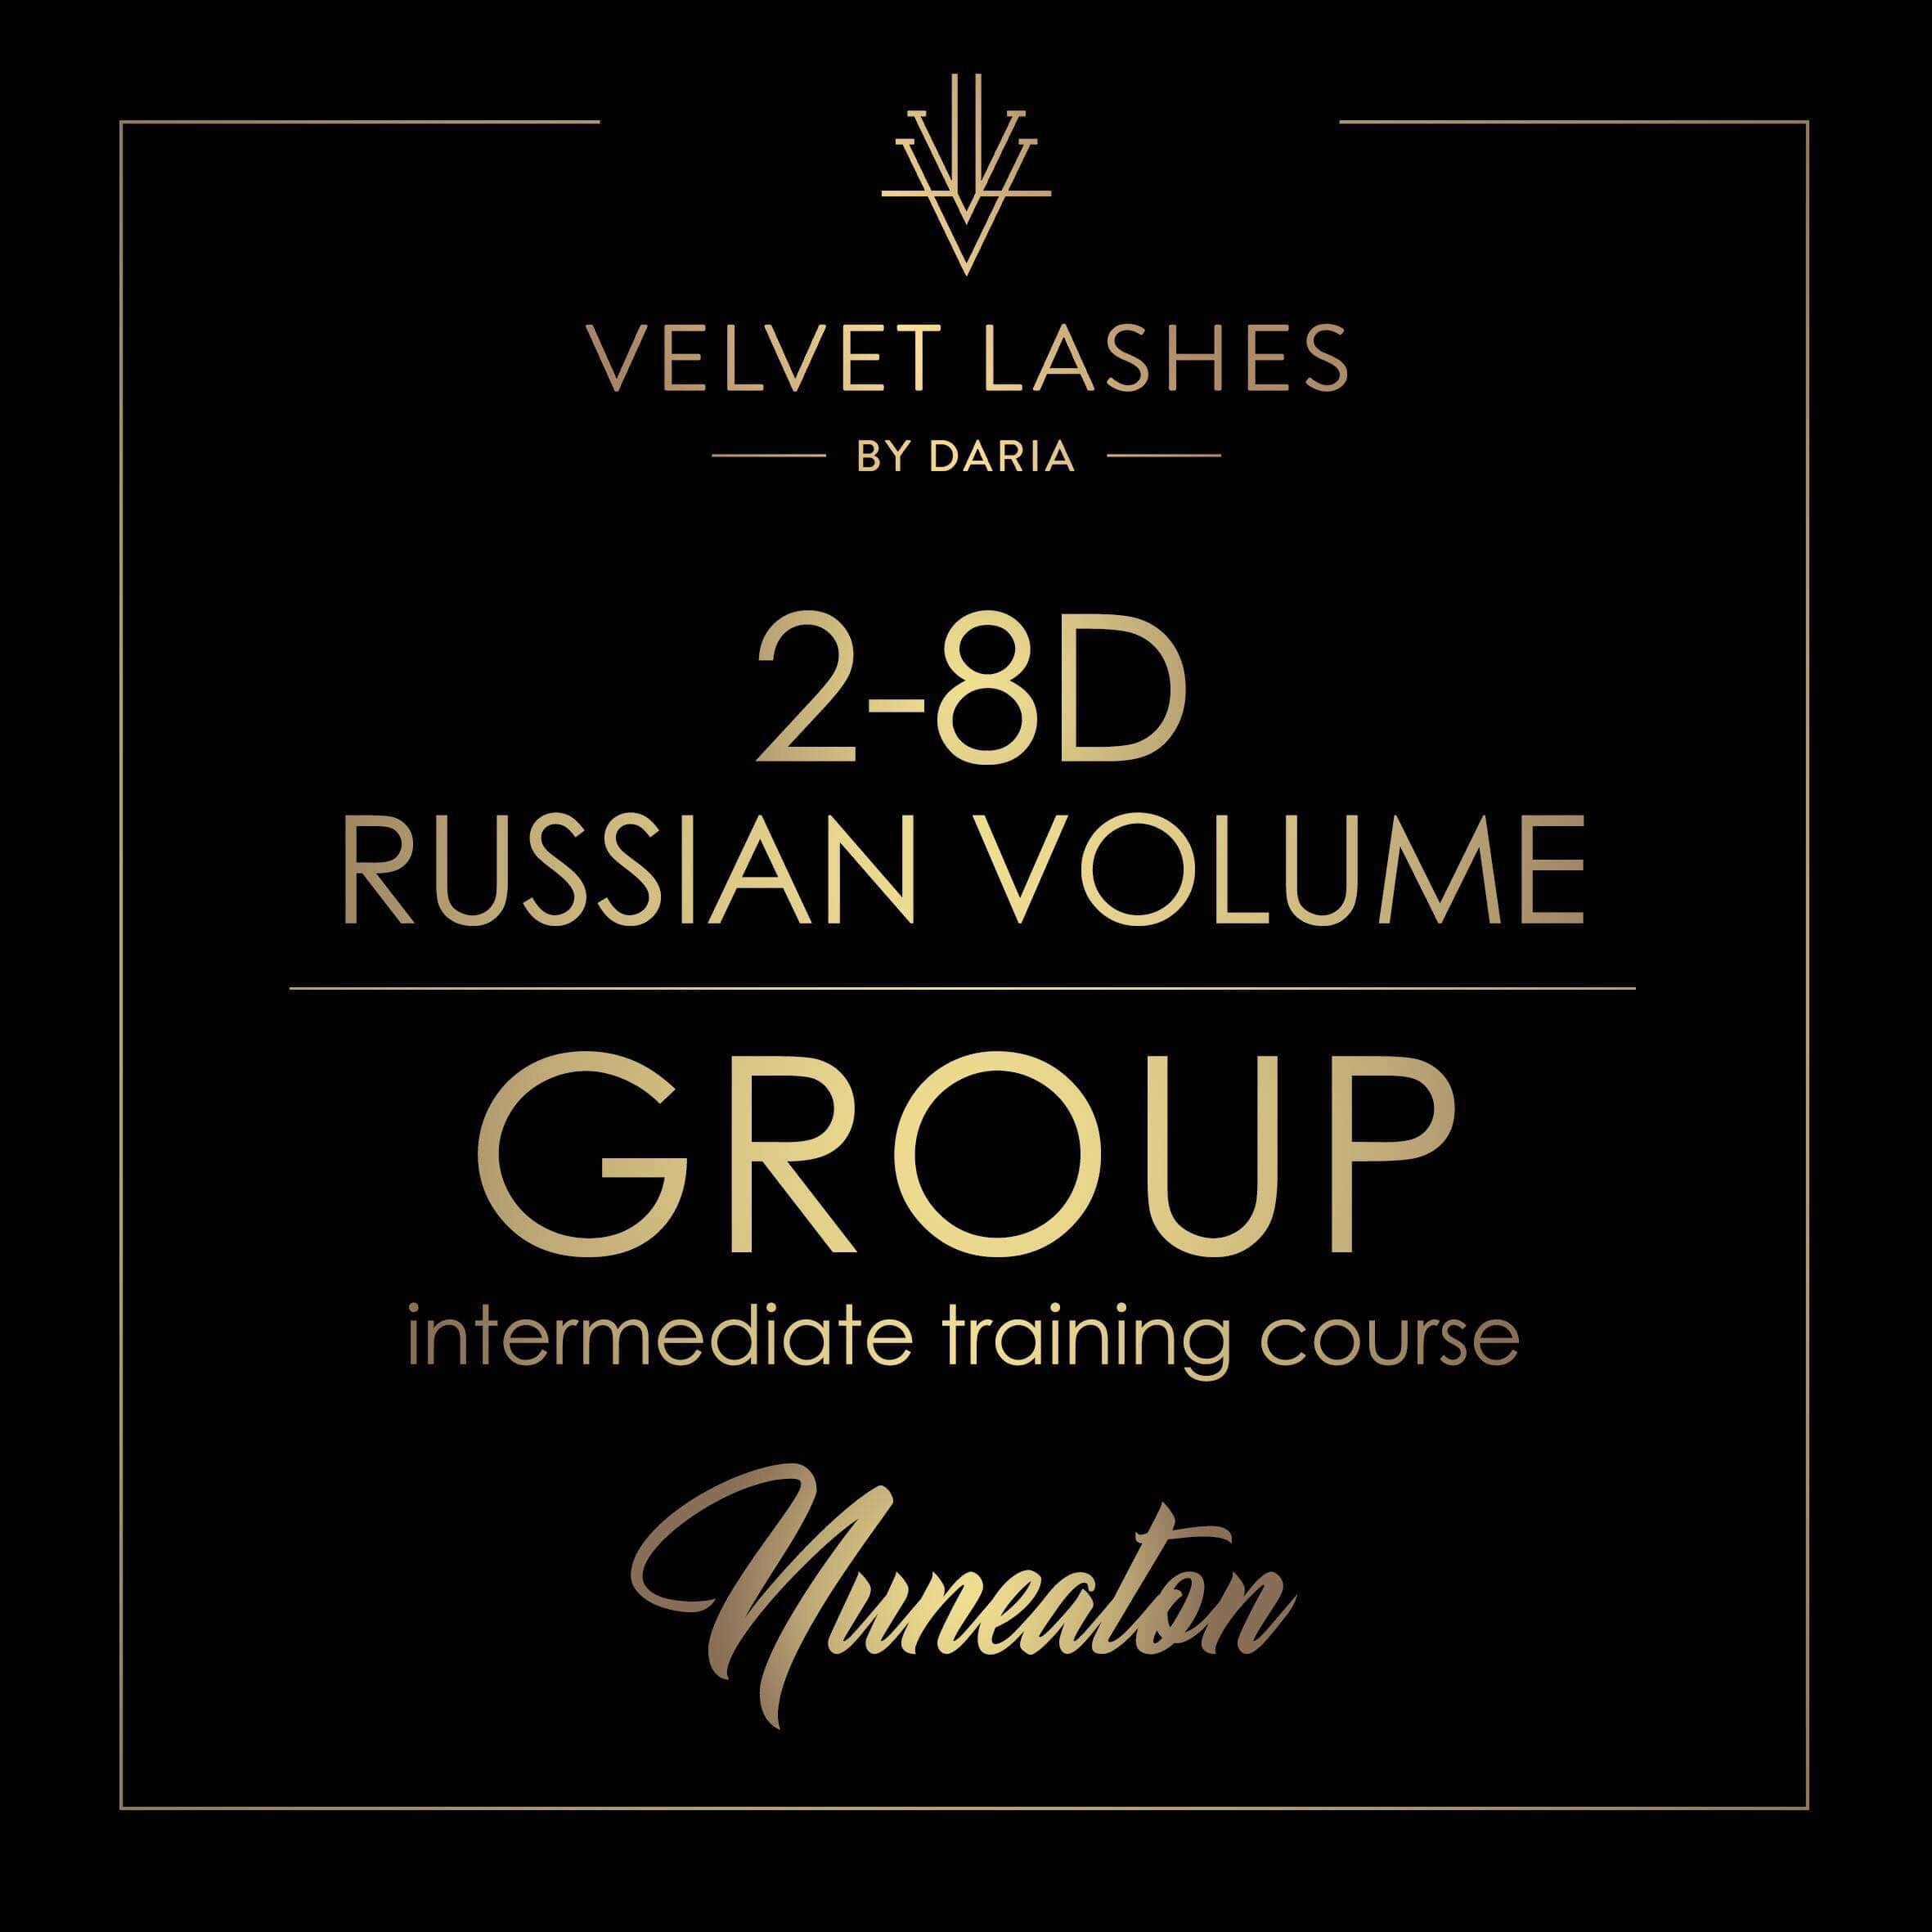 10th March 2-8d Russian Volume TRAINING COURSE IN NUNEATON (UK)